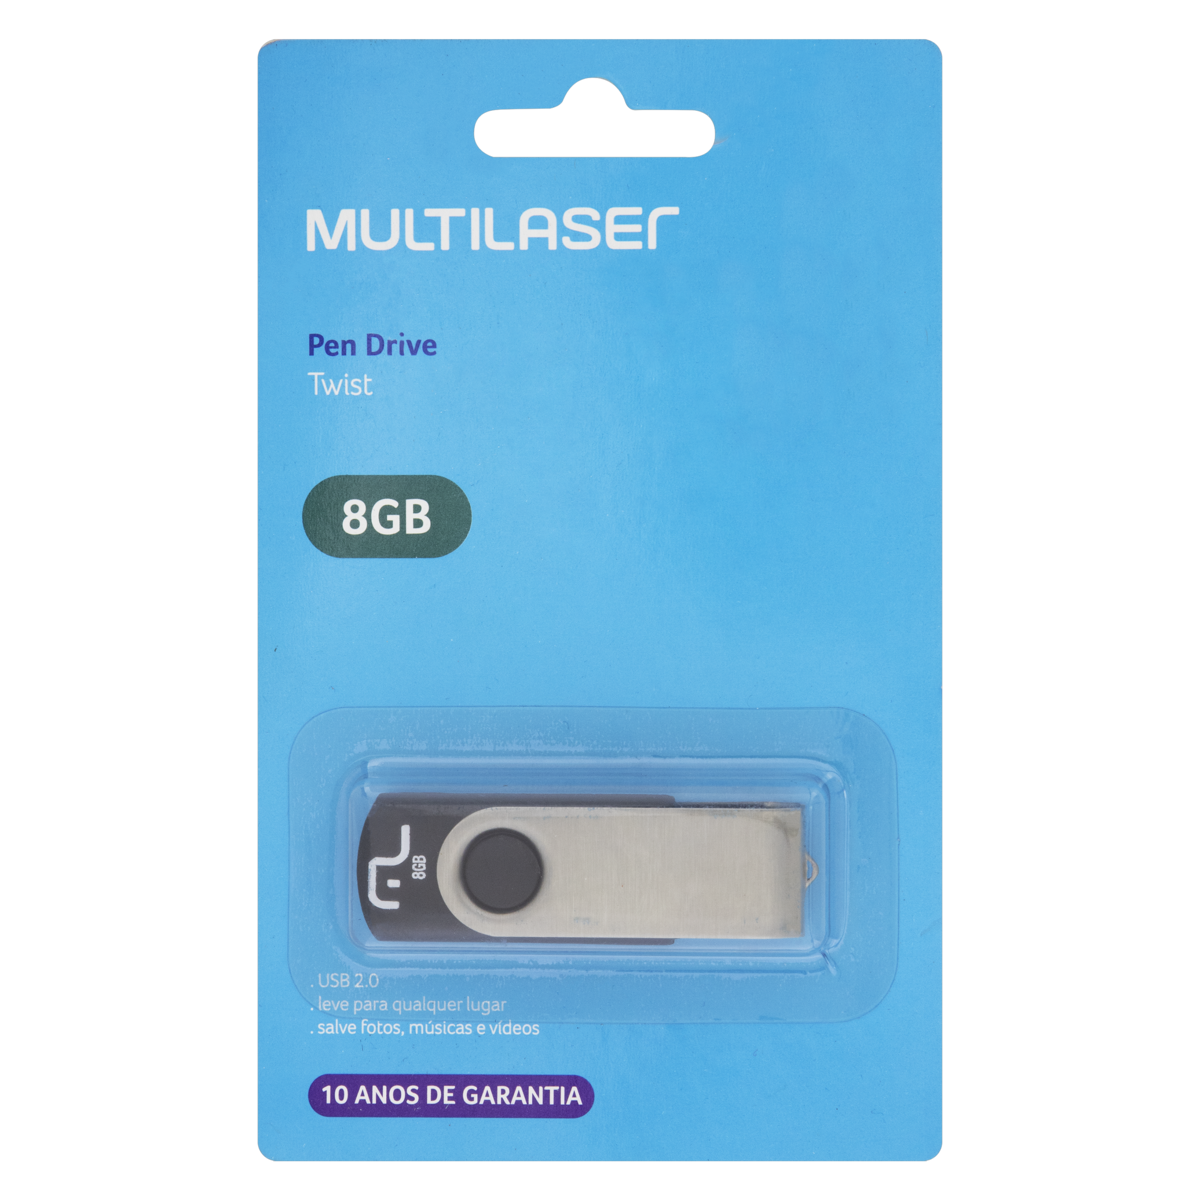 7898476326129 - PEN DRIVE MULTILASER TWIST 2 PD58700 8GB